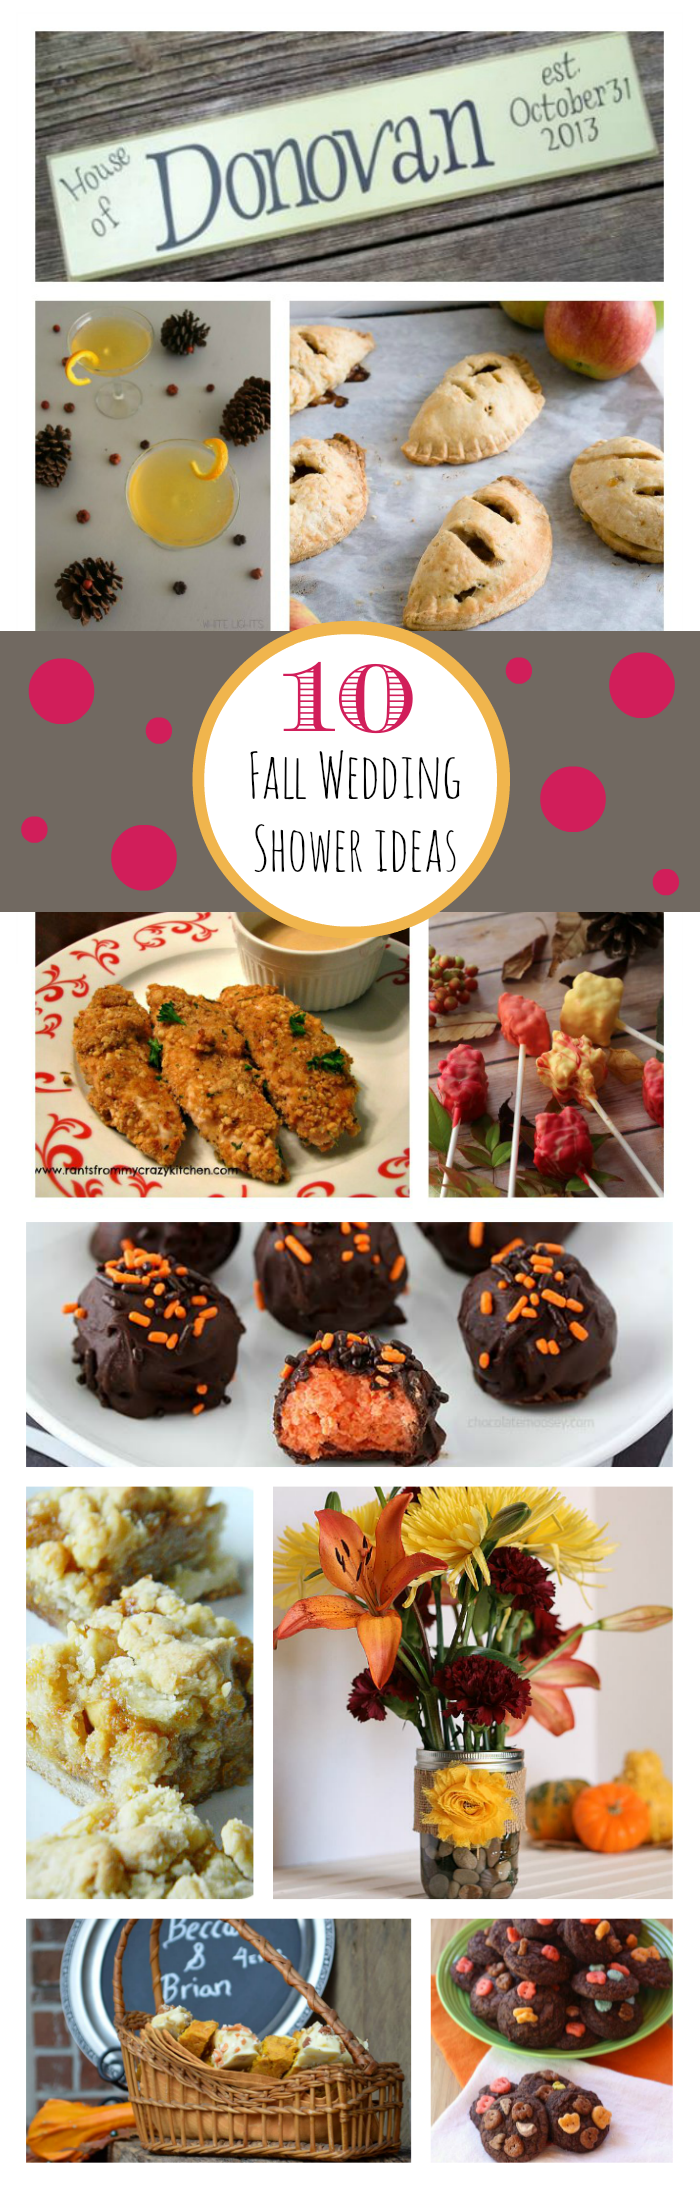 10 Fall Wedding Shower Ideas